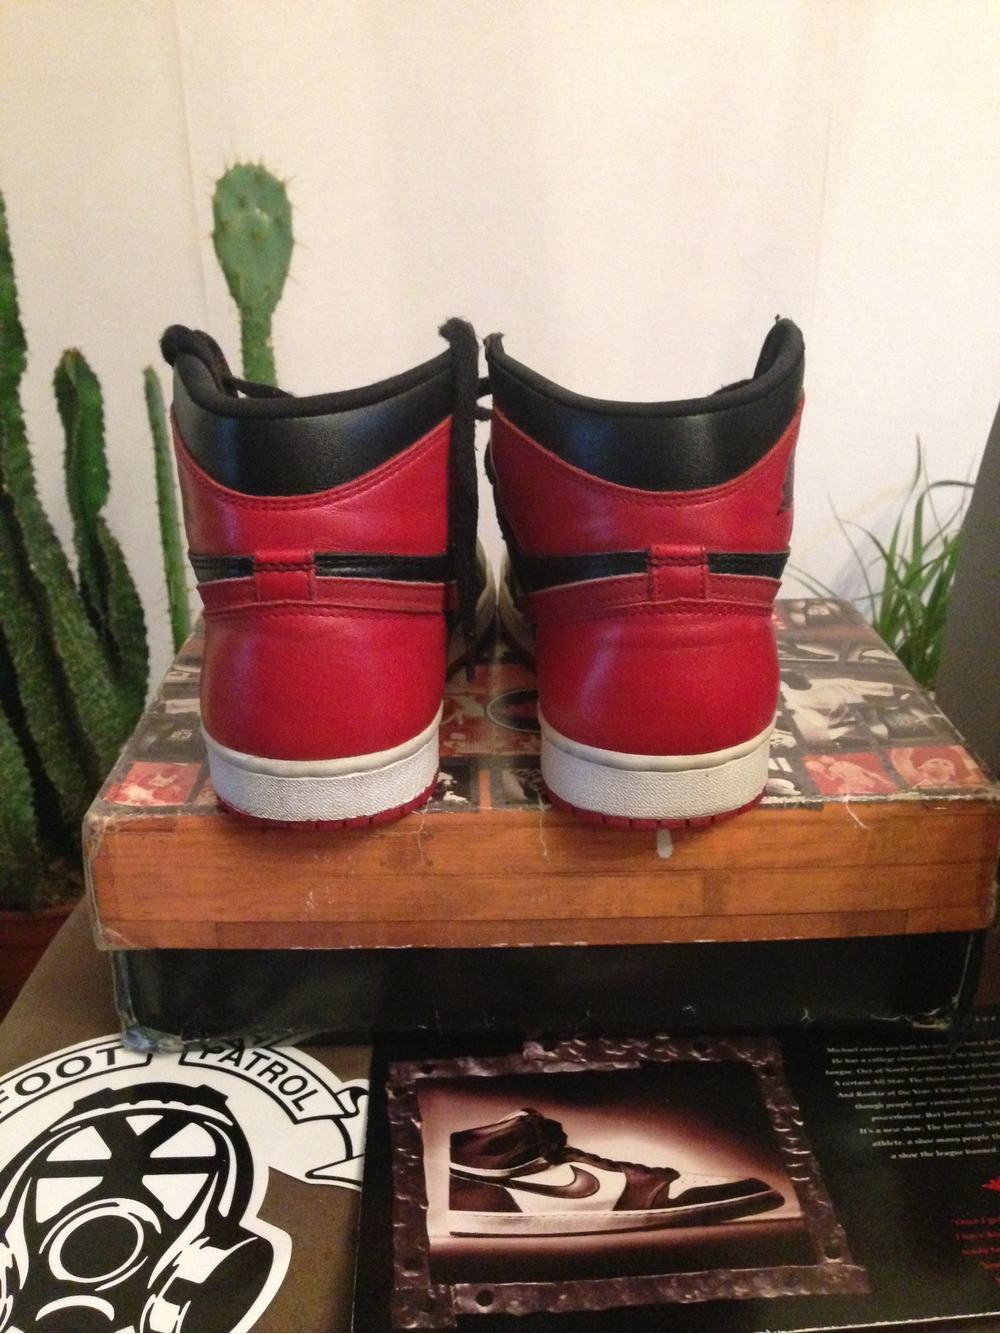 Jordan 1 Bred 1994 7US - photo 4/5